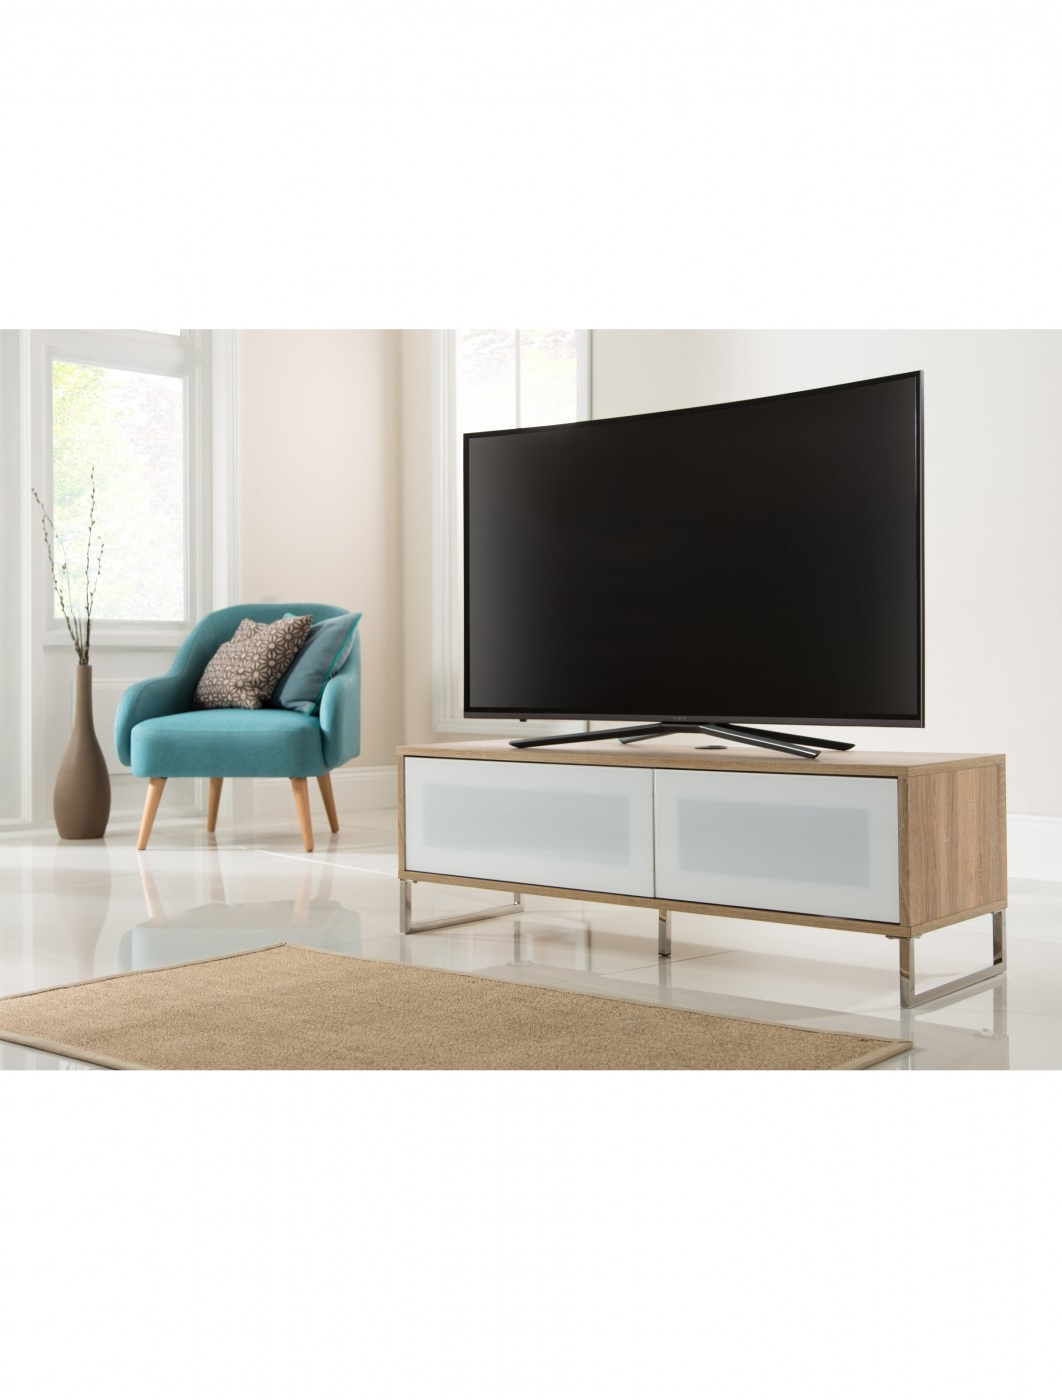 Latest Alphason Helium 1200mm Tv Stand Adhe1200 Lo (View 7 of 25)